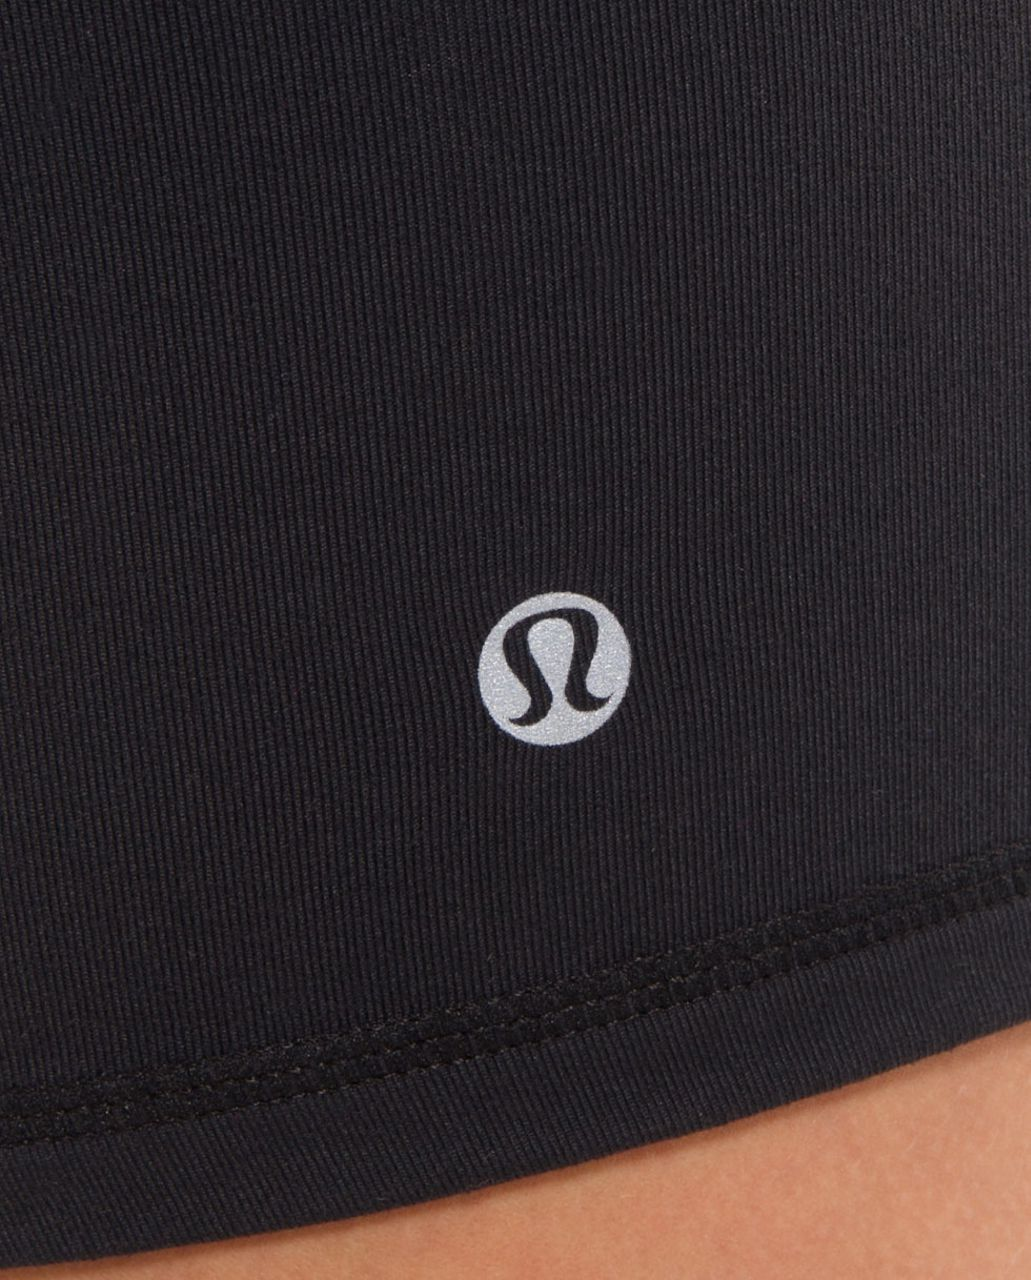 Lululemon Boogie Short - Black /  White Black Microstripe /  Heathered Black